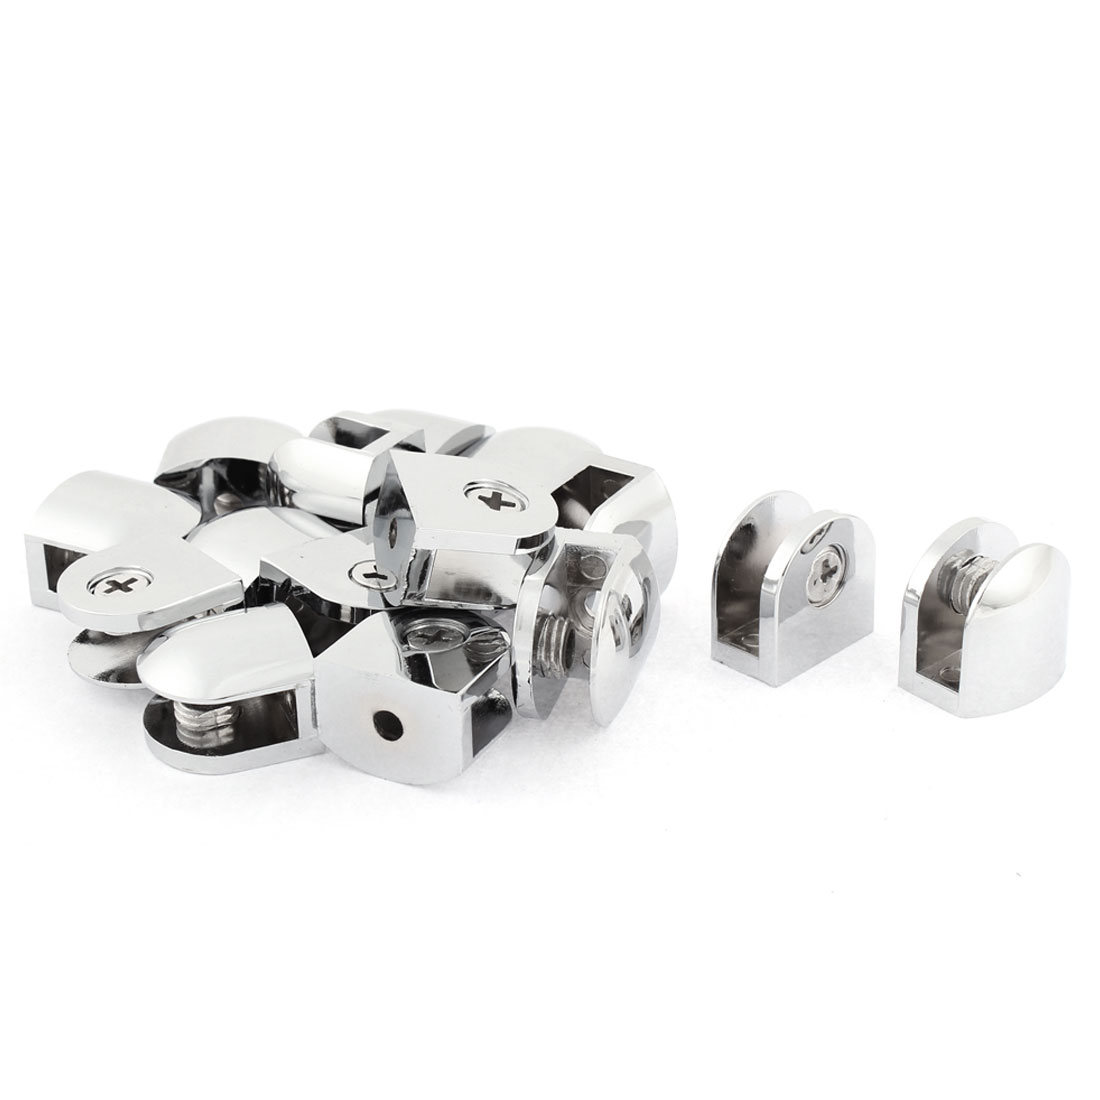 Semicircle Shaped 8mm Thickness Glass Shelf Bracket Support Clip Clamp 16pcs